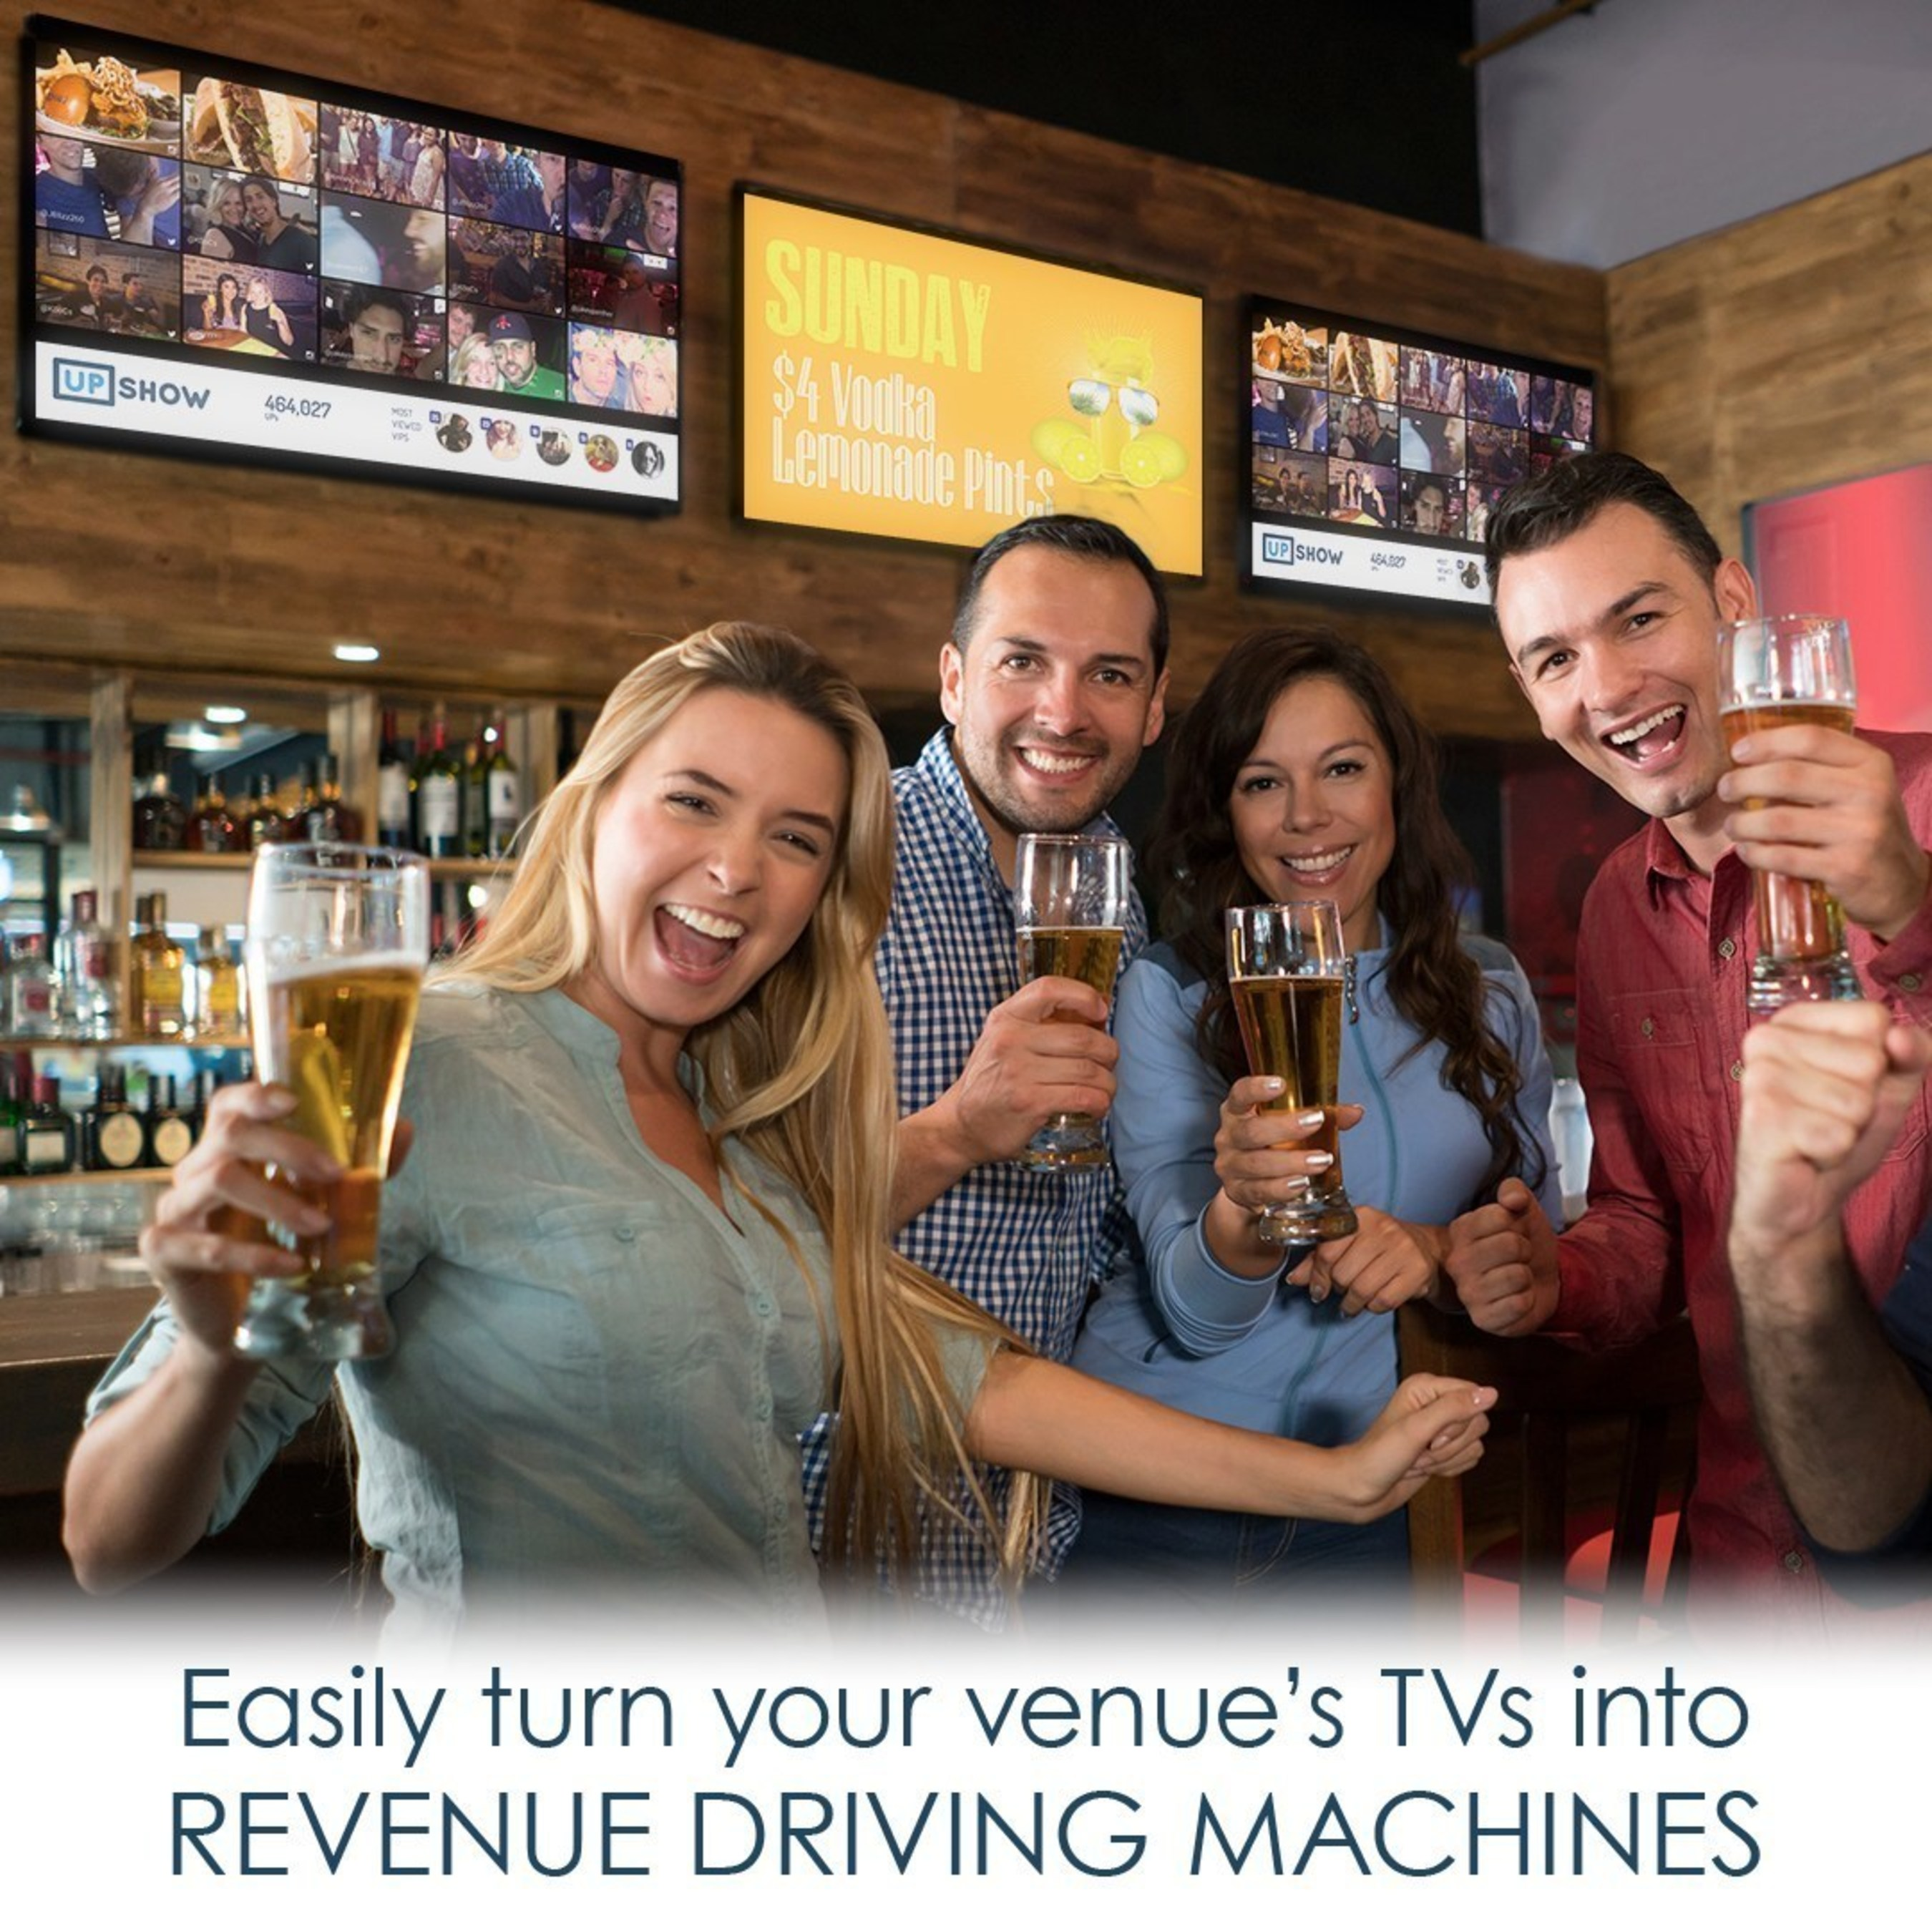 c3399726f6036 UPshow's Promo Display Turns In-Store TVs into Powerful Marketing ...